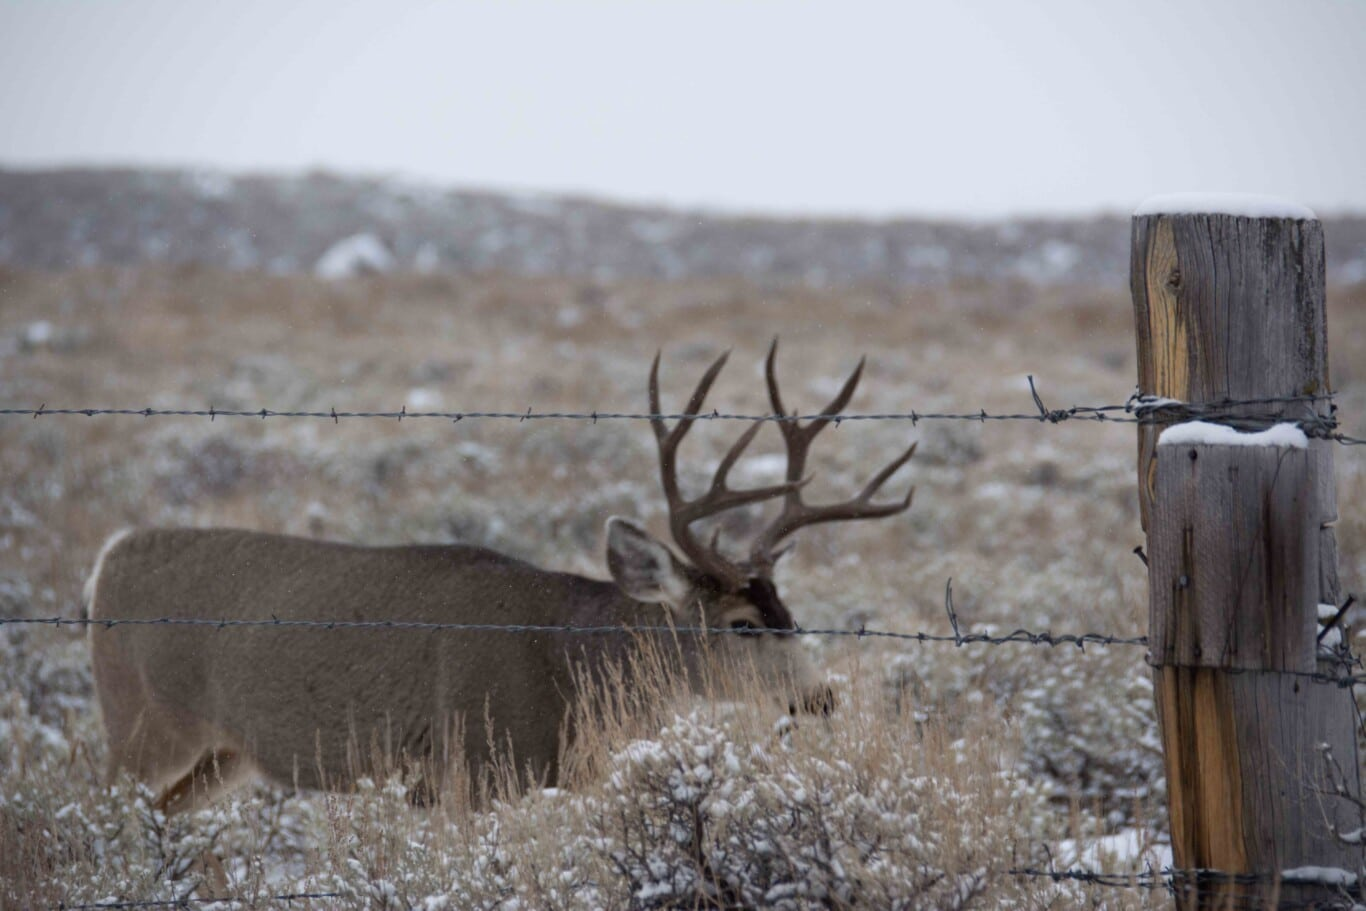 How Do I Manage My Land to Help Mule Deer?